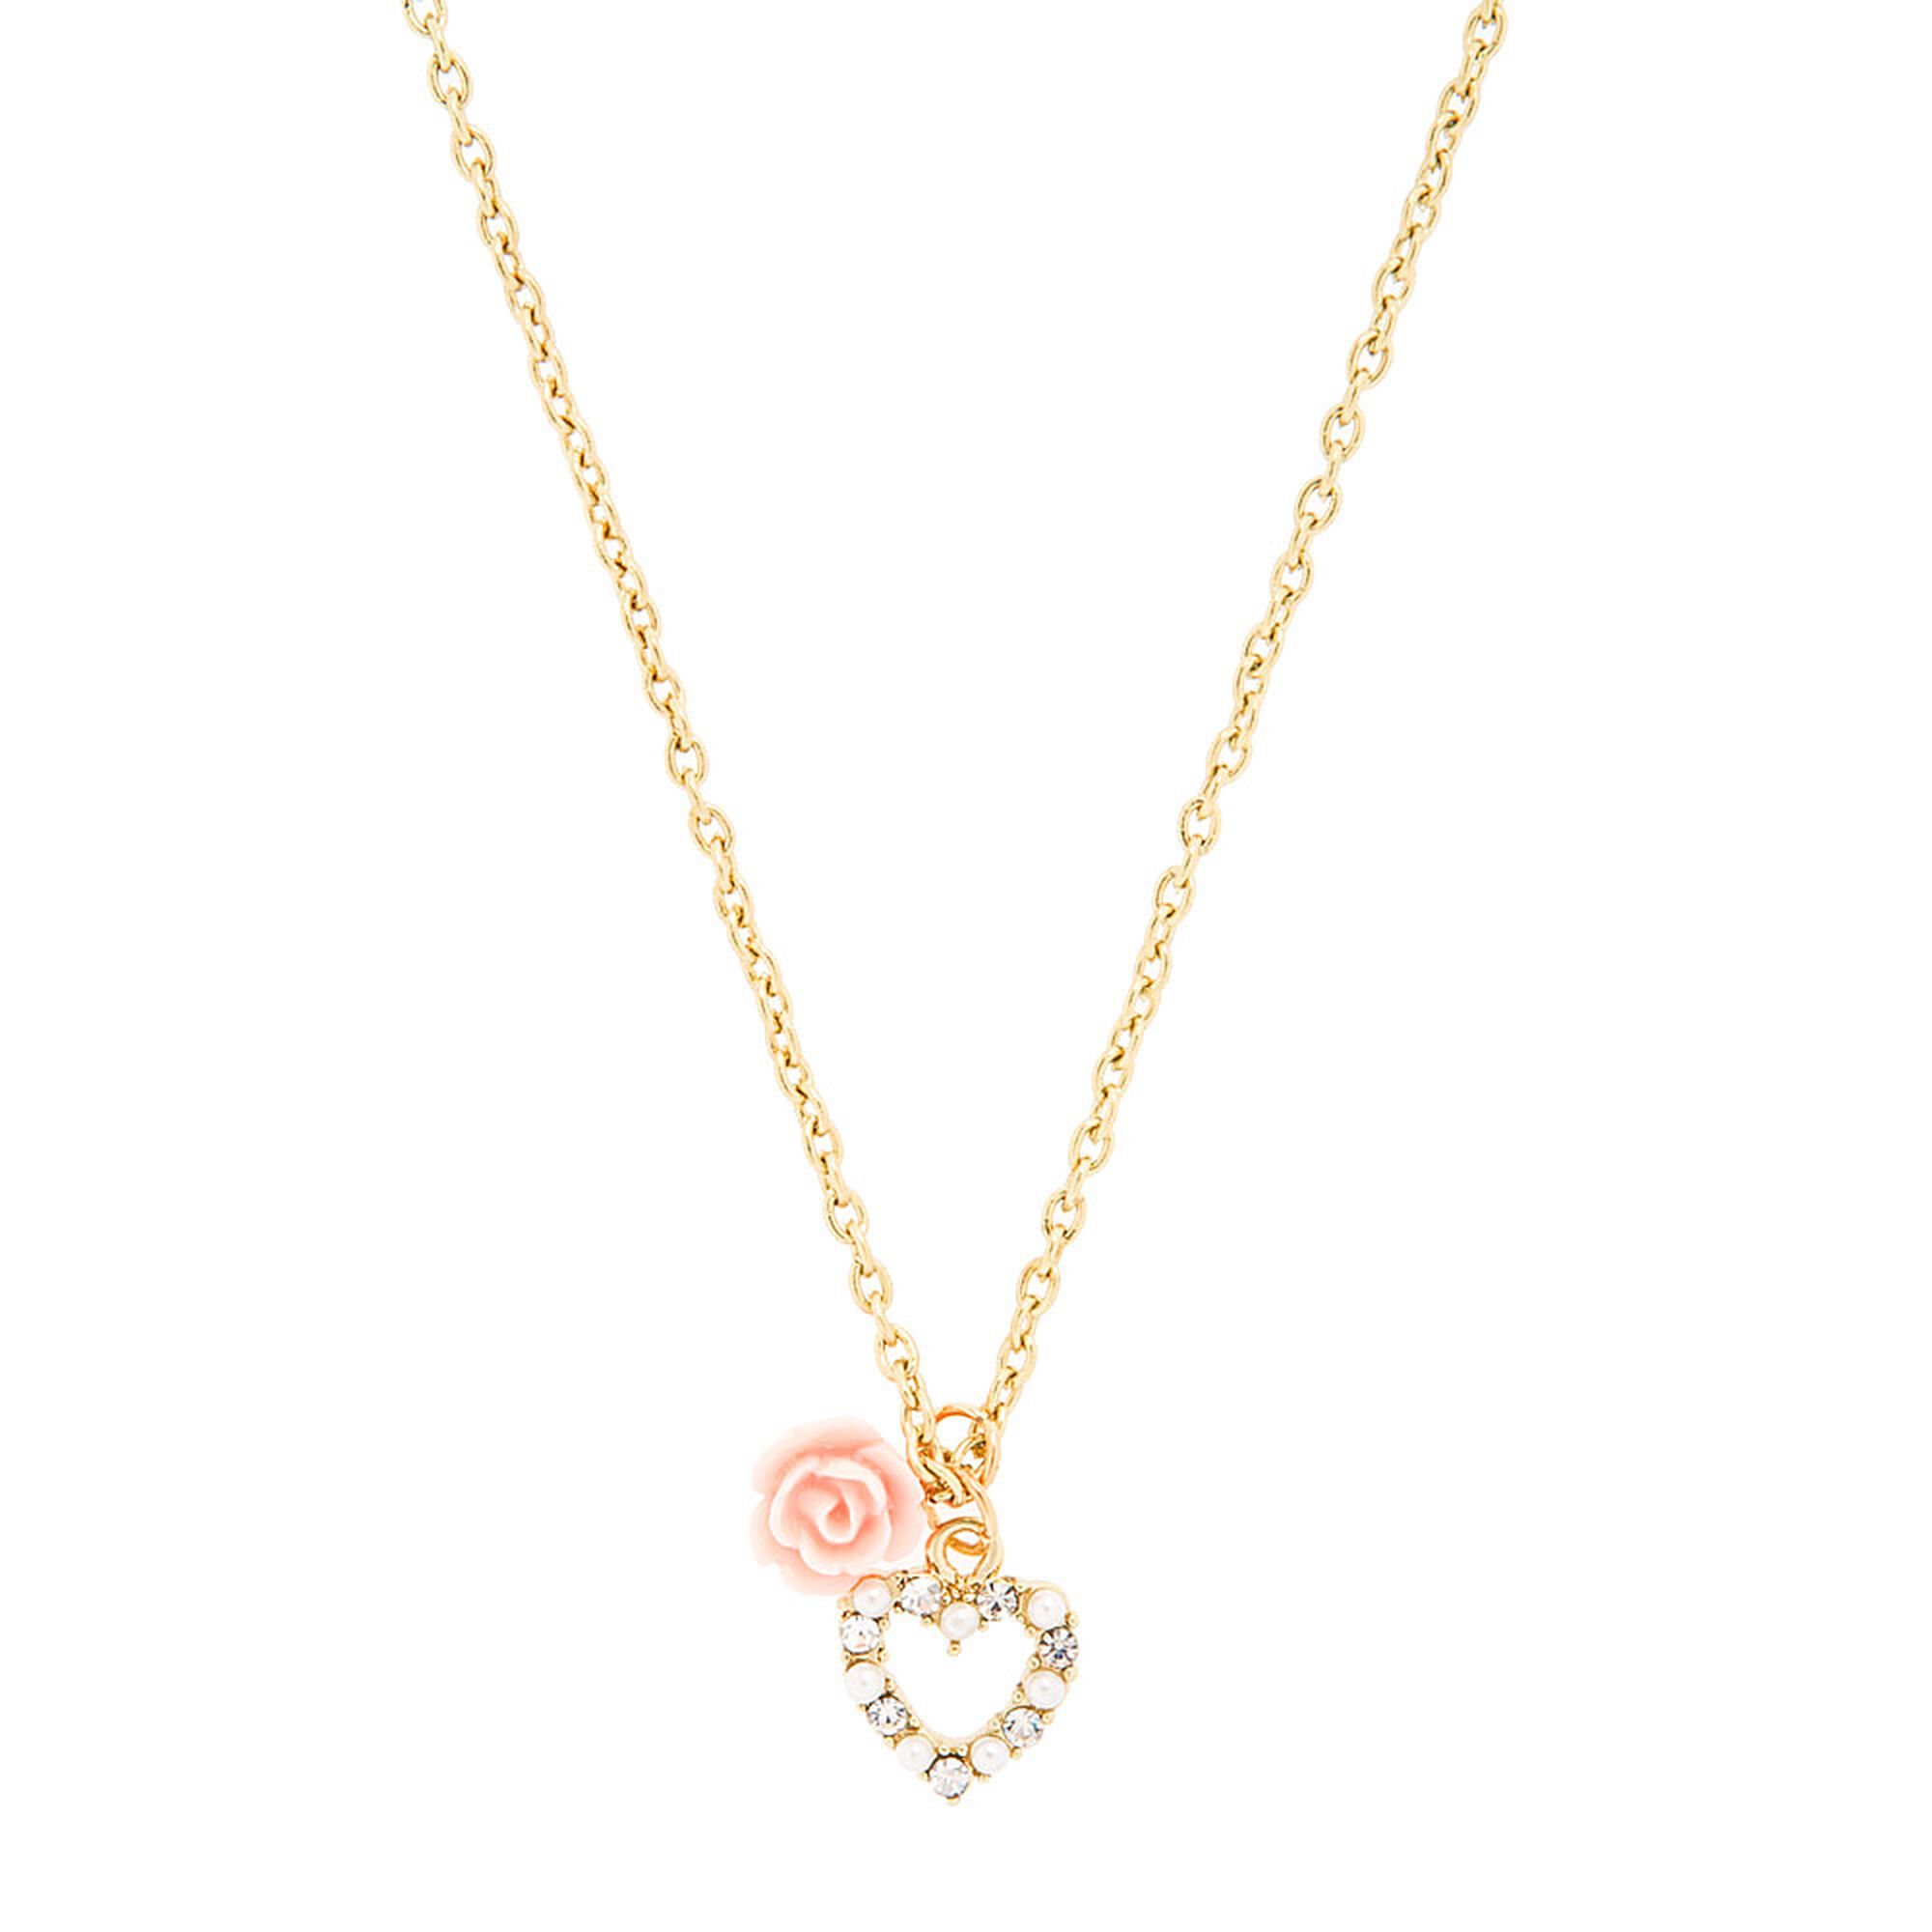 elegant products vila for small roses rosa inspired style women simple rose minimalist necklace